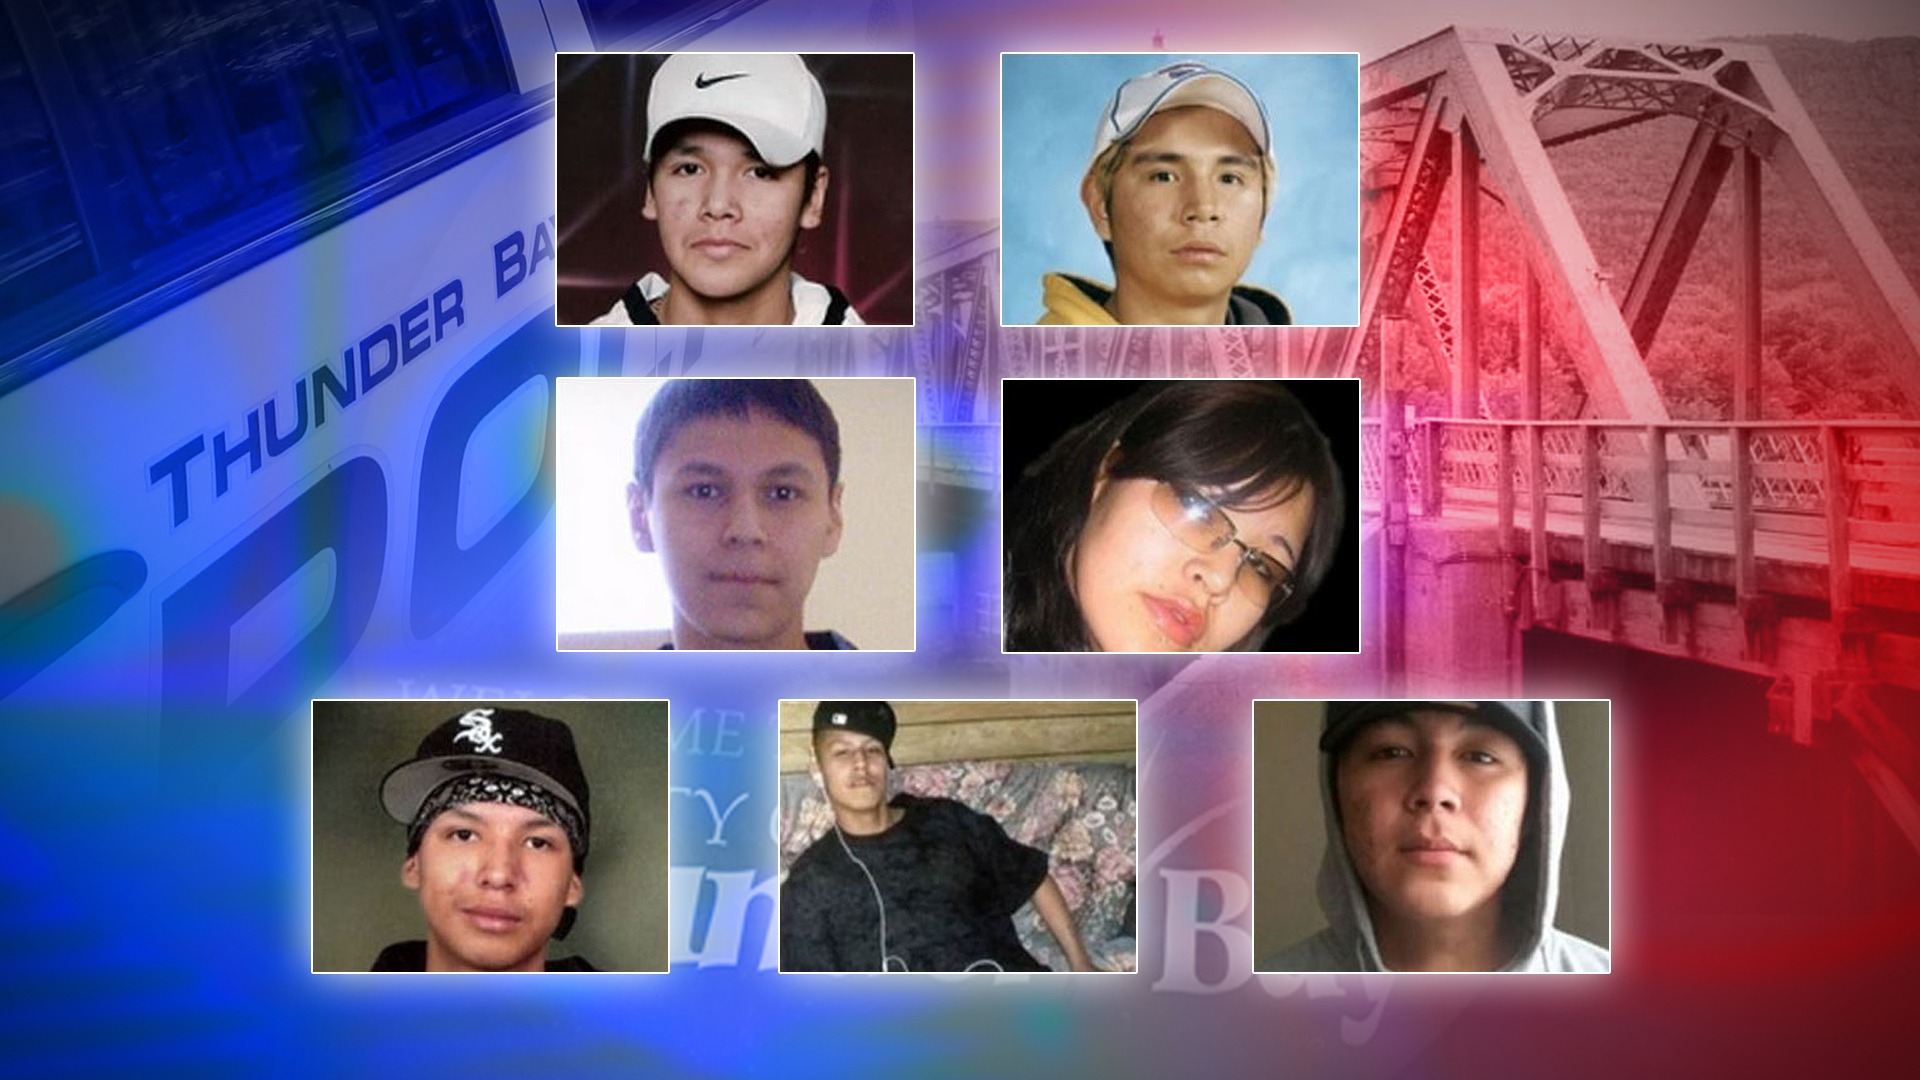 A coroner's inquest was held into the deaths of students: Jethro Anderson. Curran Strang, Paul Panacheese, Robyn Harper, Reggie Bushie, Kyle Morriseau and Jordan Wabasse.